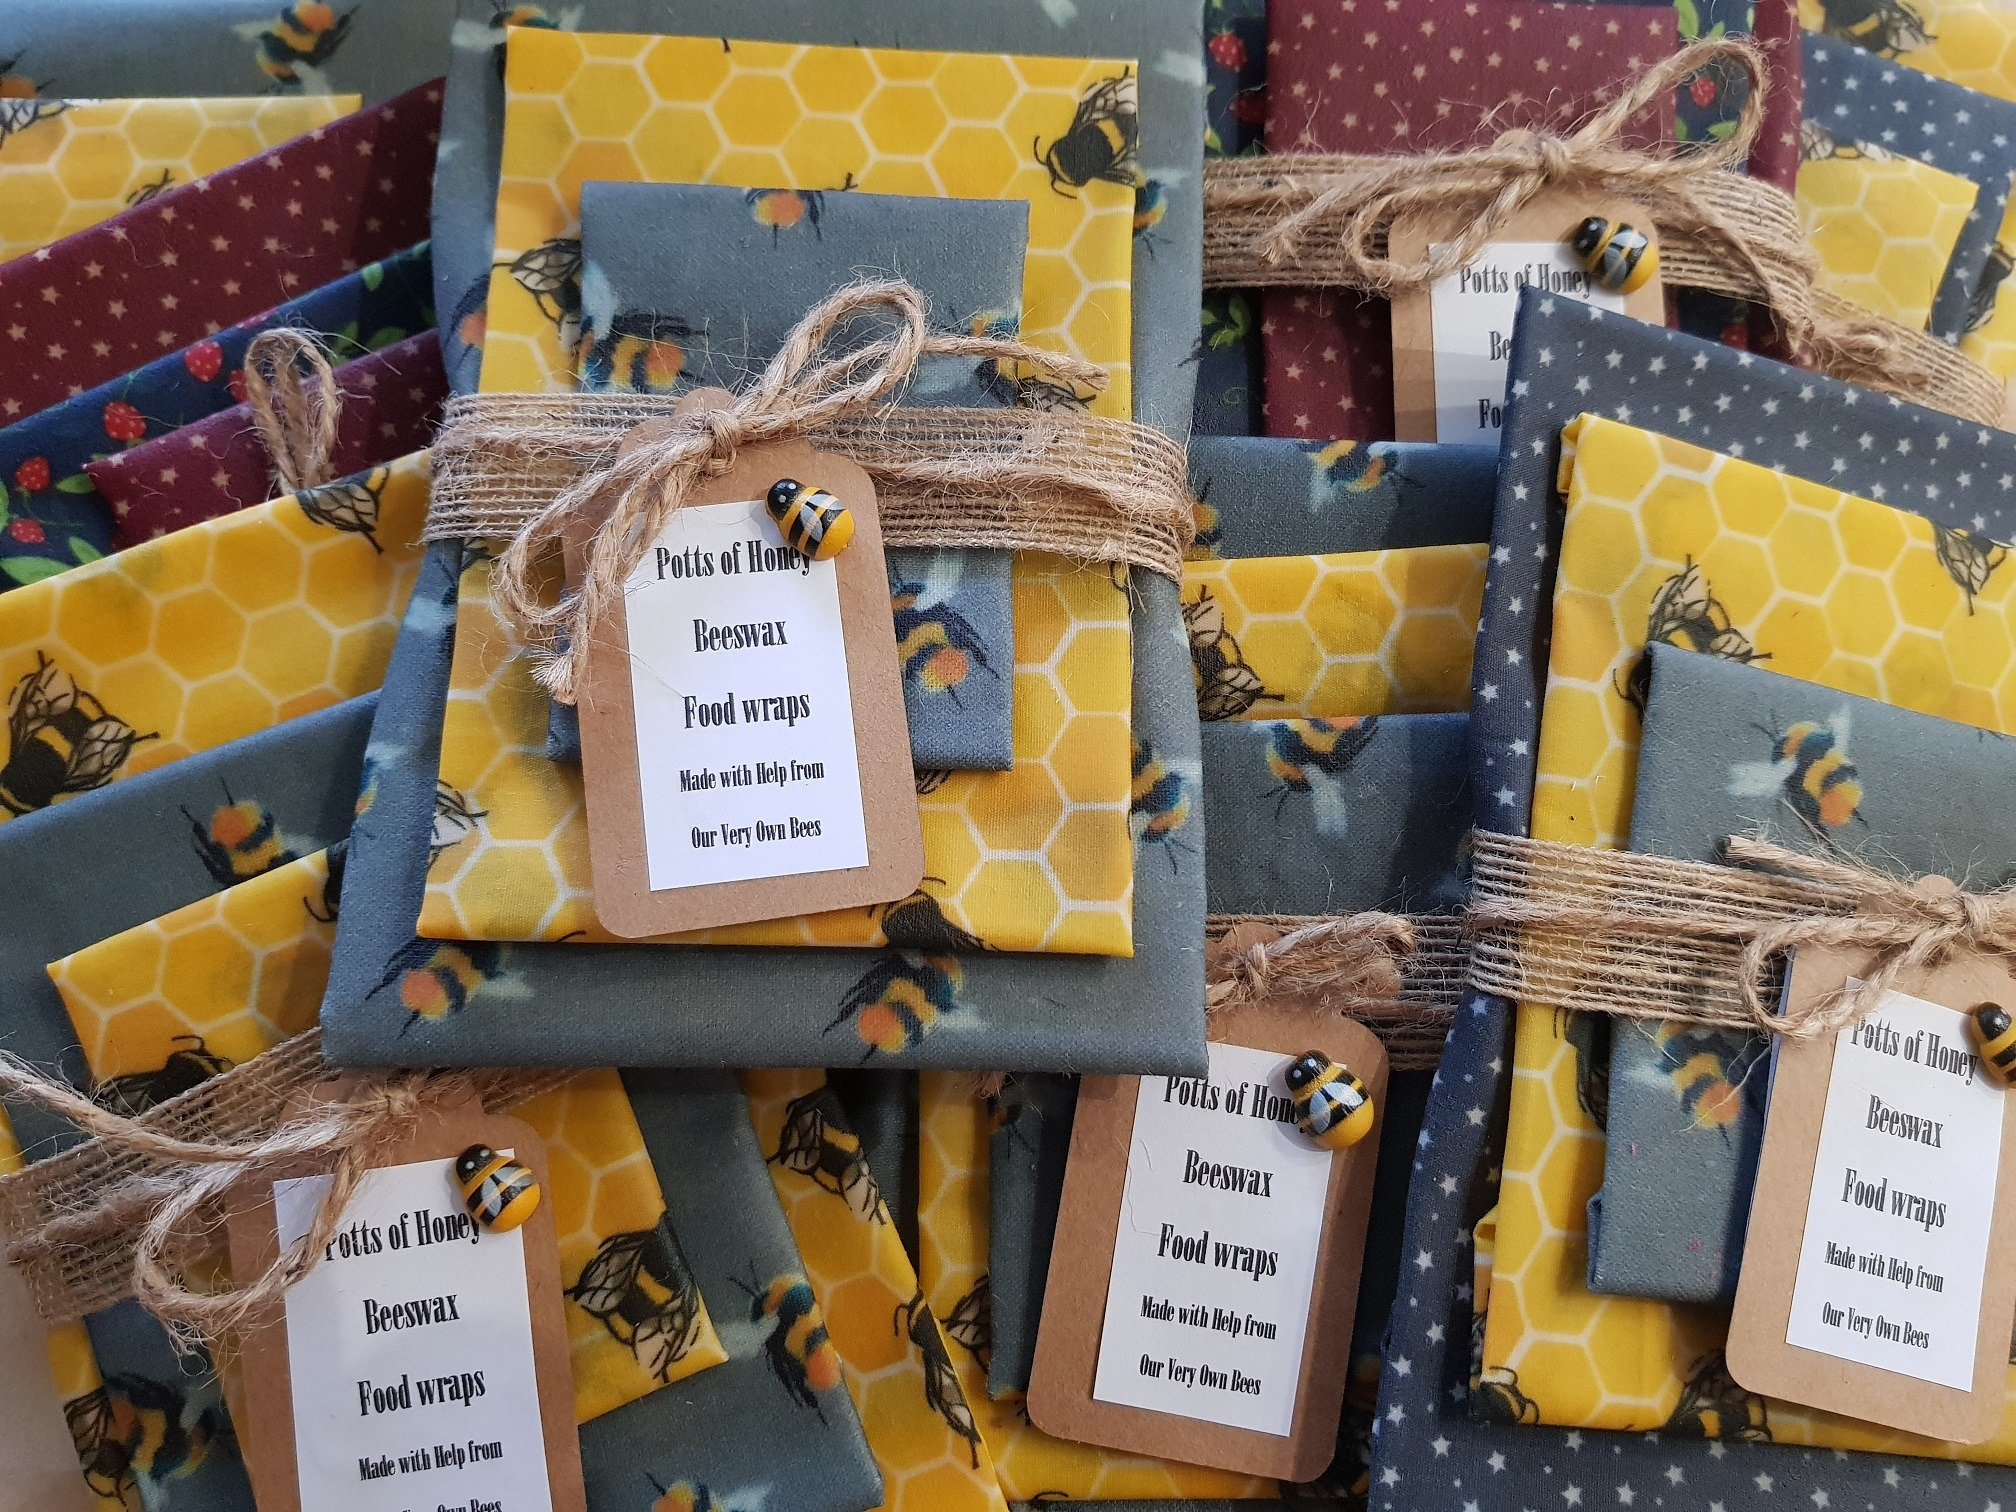 POH – Beeswax Food Wraps #2